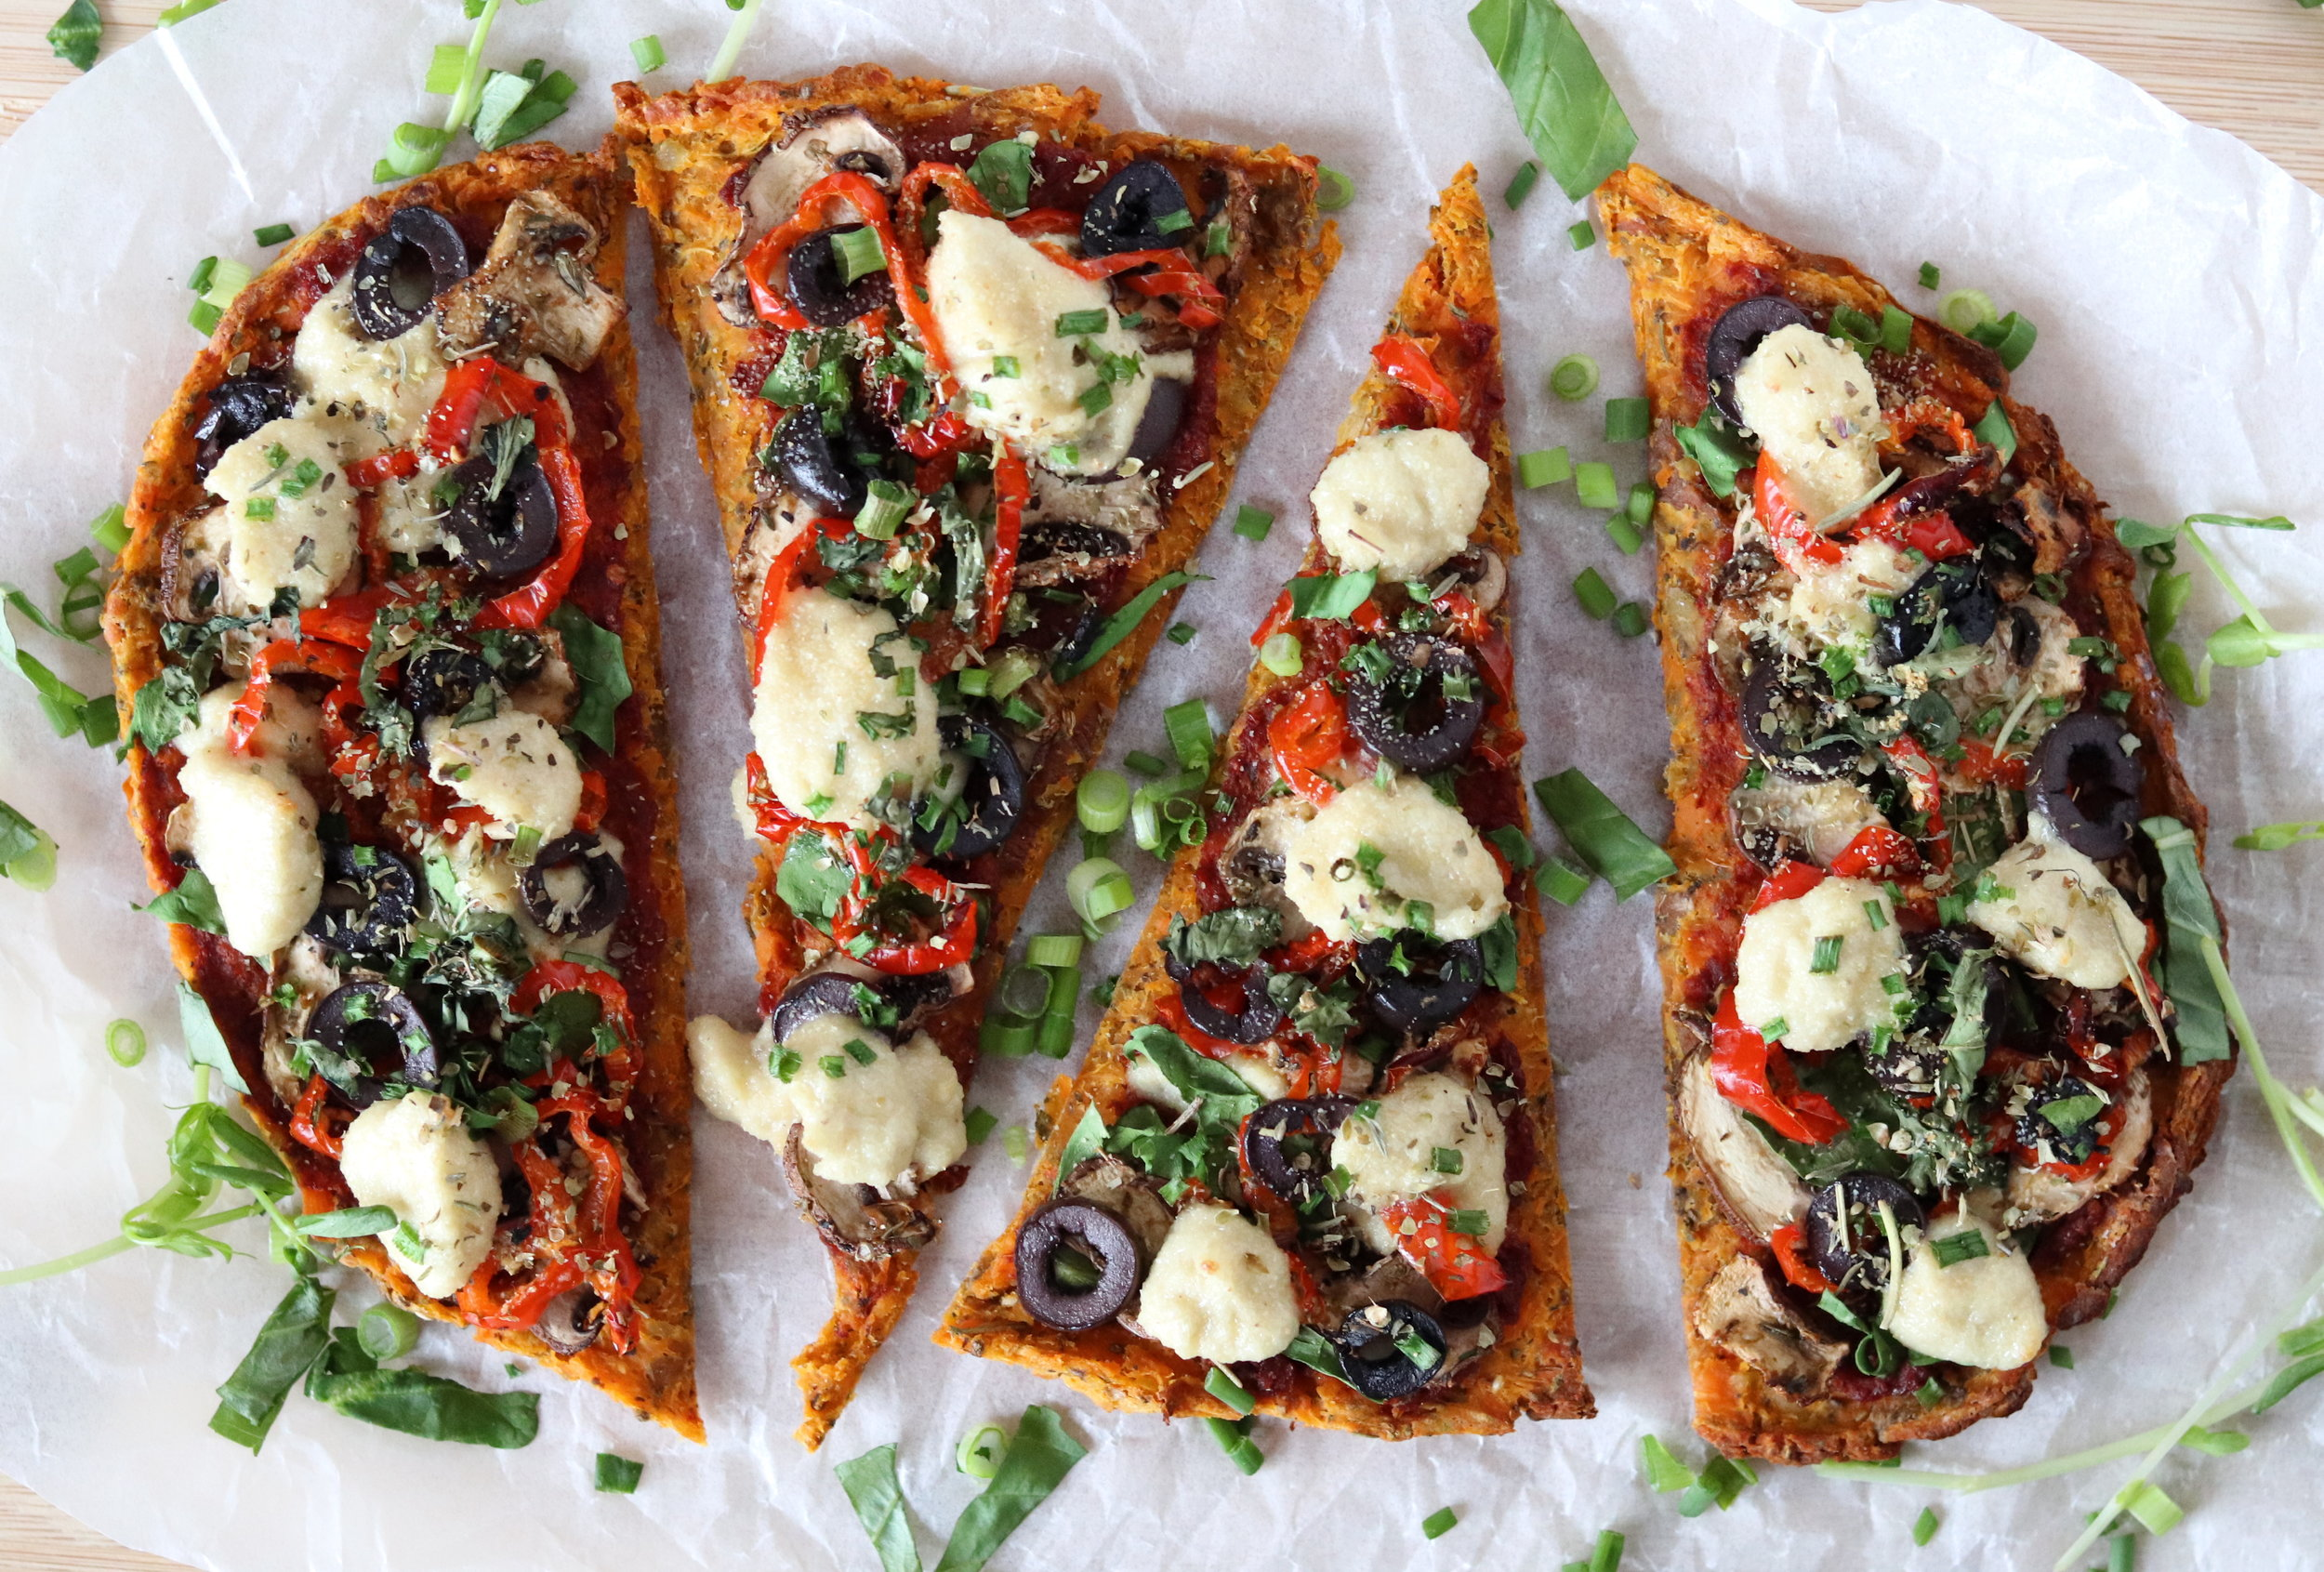 CH 2 sweet potato pizza p 29 redo.JPG